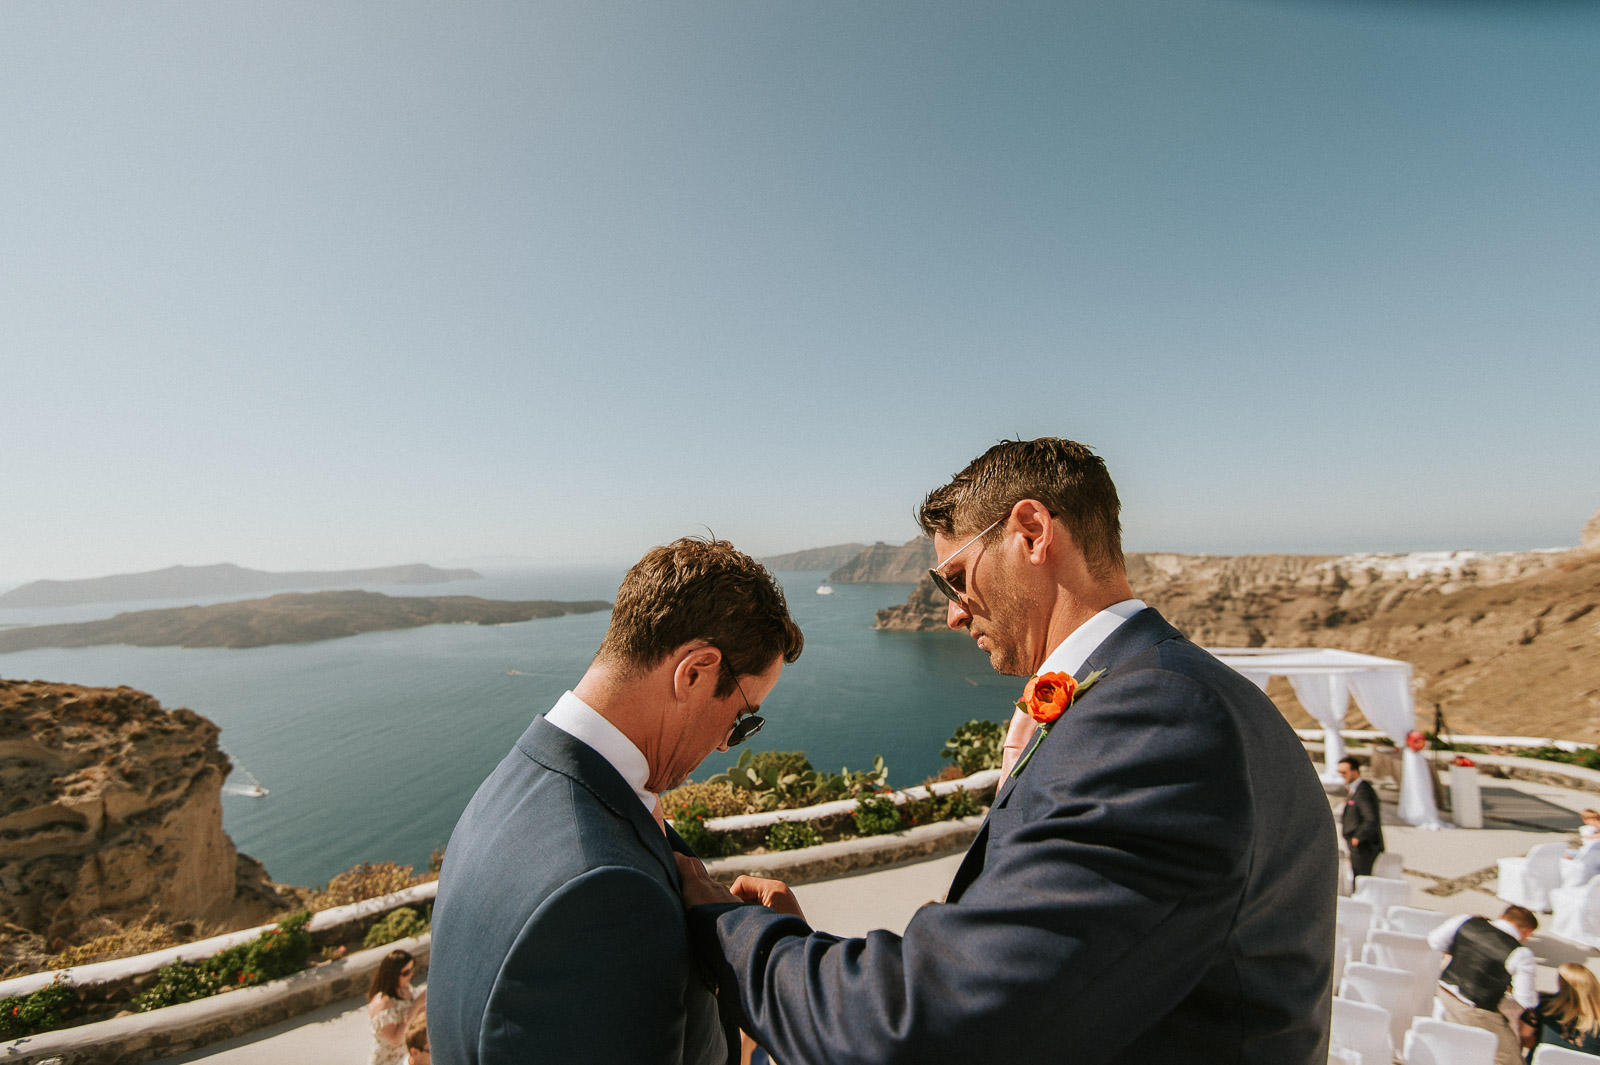 Santorini-Wedding-Photographer-Greece-Destination-Weddings-Mait-Juriado-M&J-Studios-046